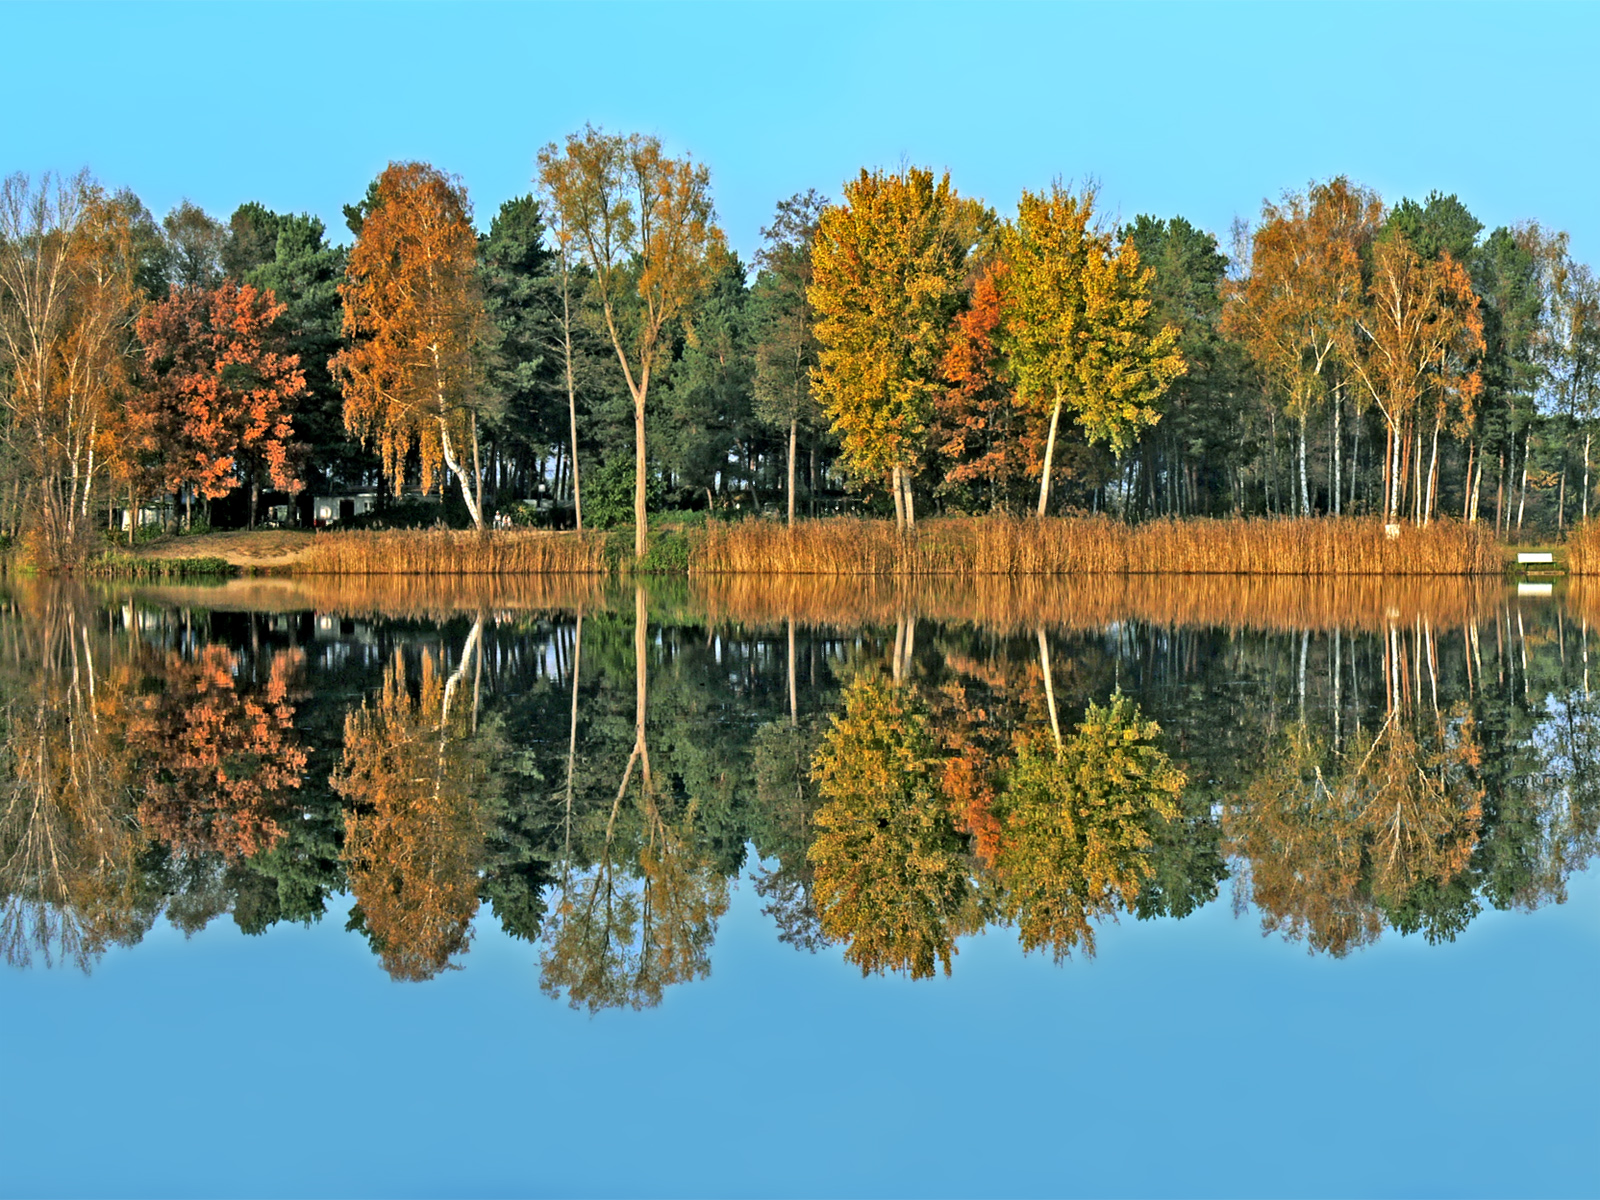 Herbstbemalung am See